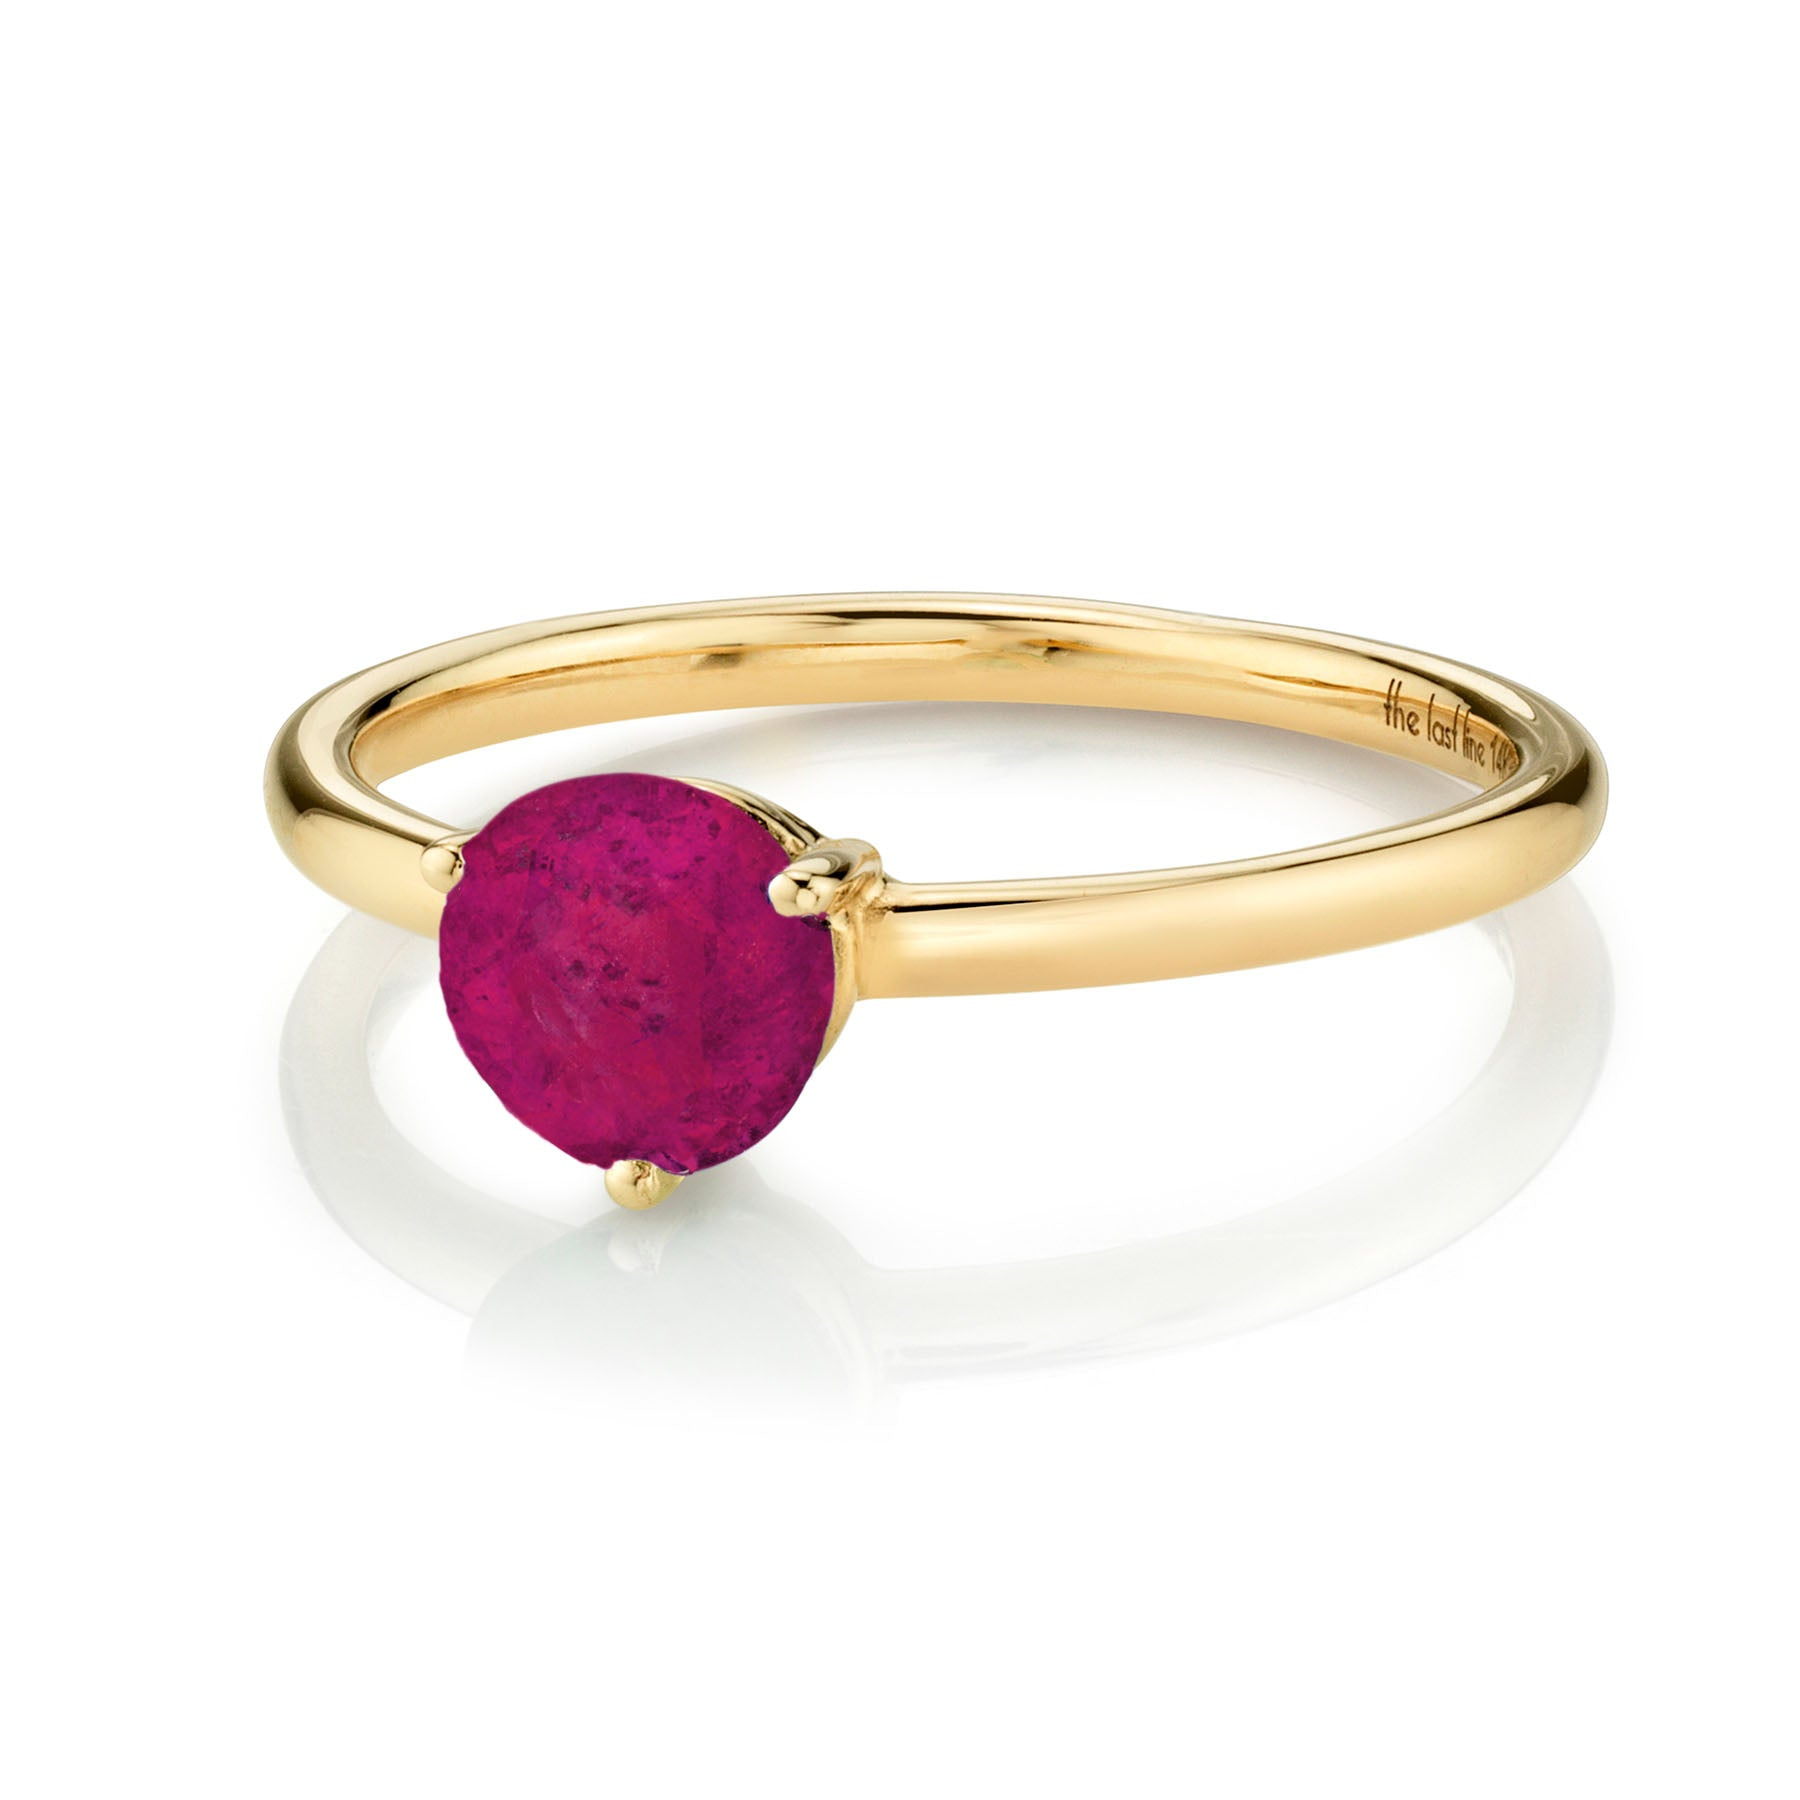 LARGE SOLITAIRE RUBY RING